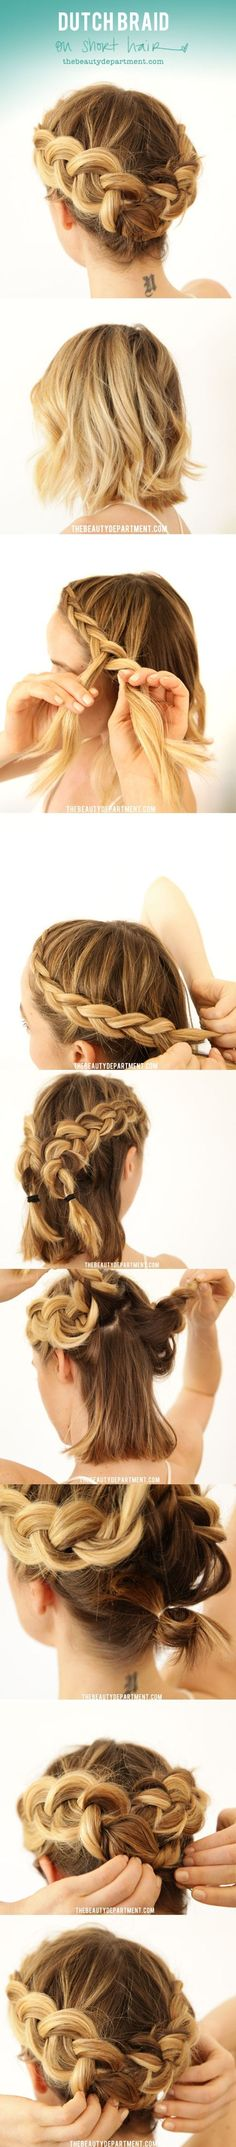 beach inspired hairstyles diy